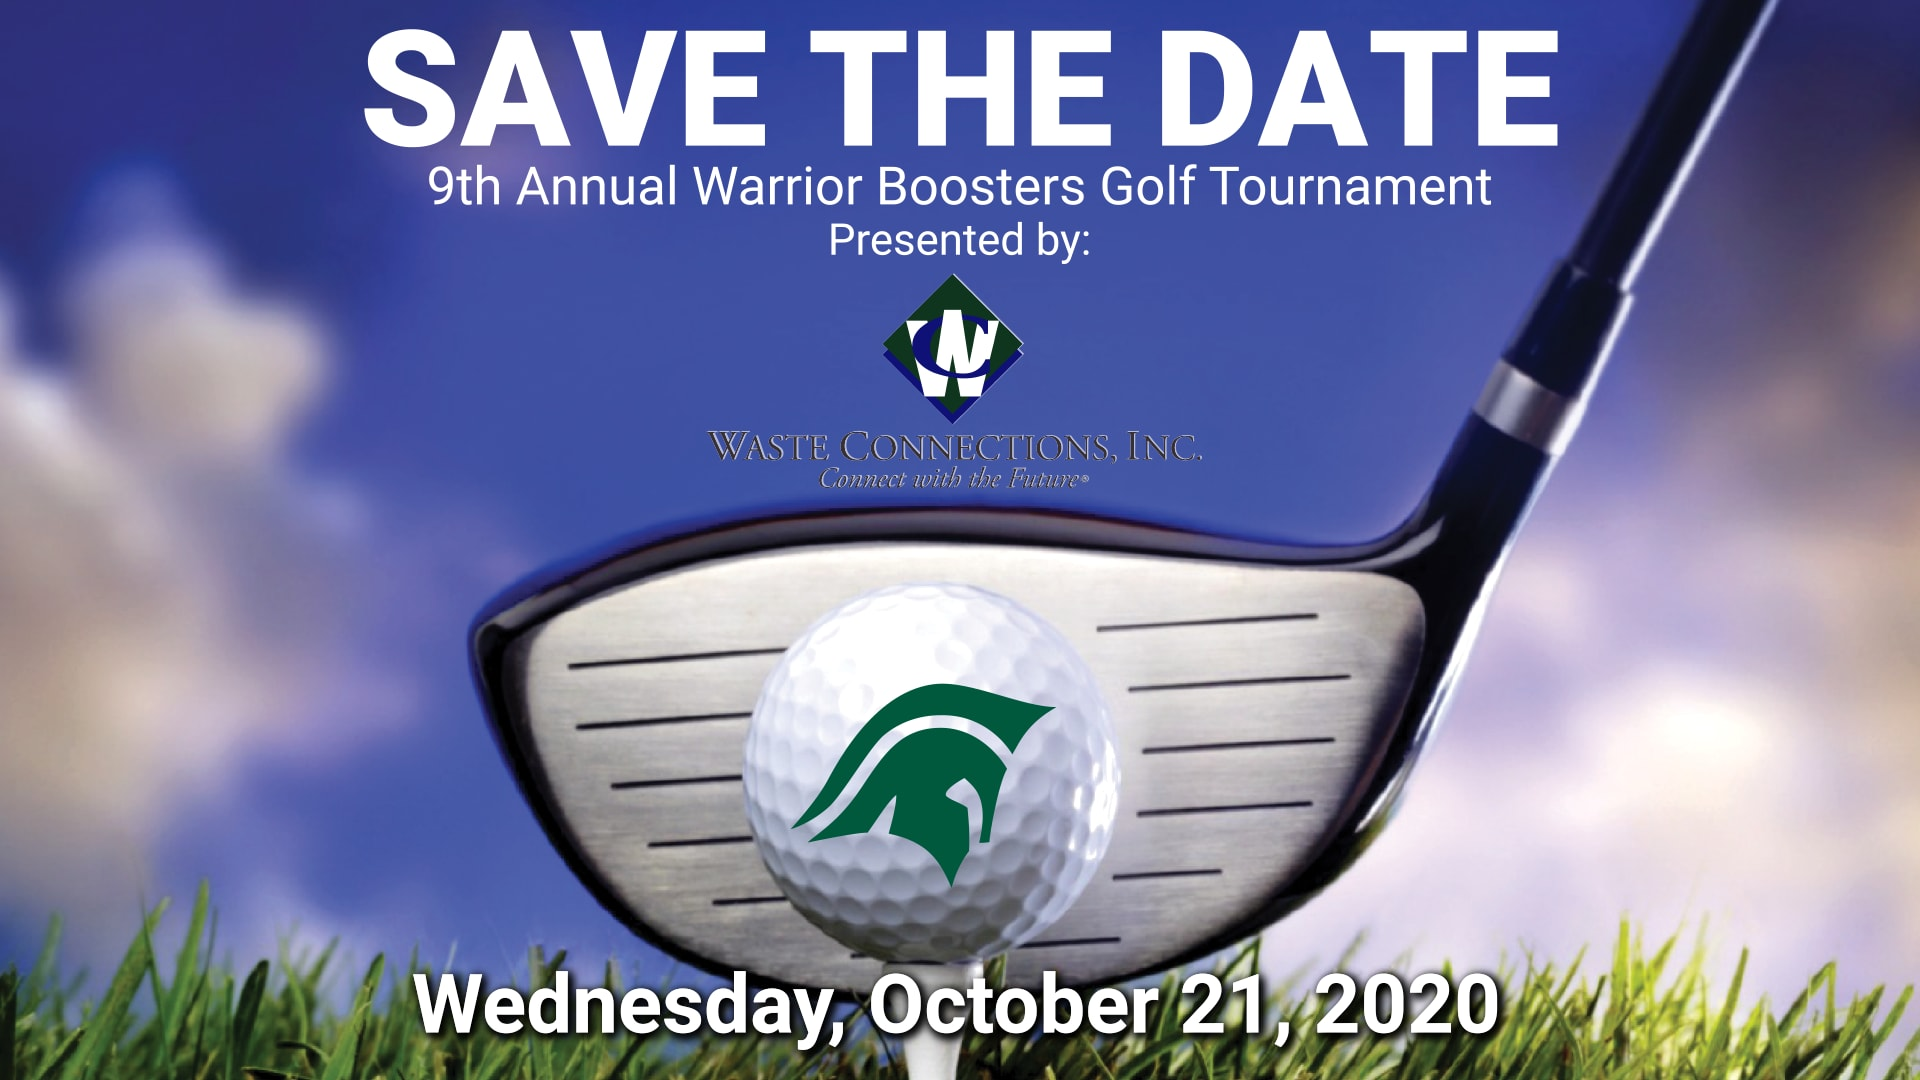 2020 Golf Tournament Save the Date